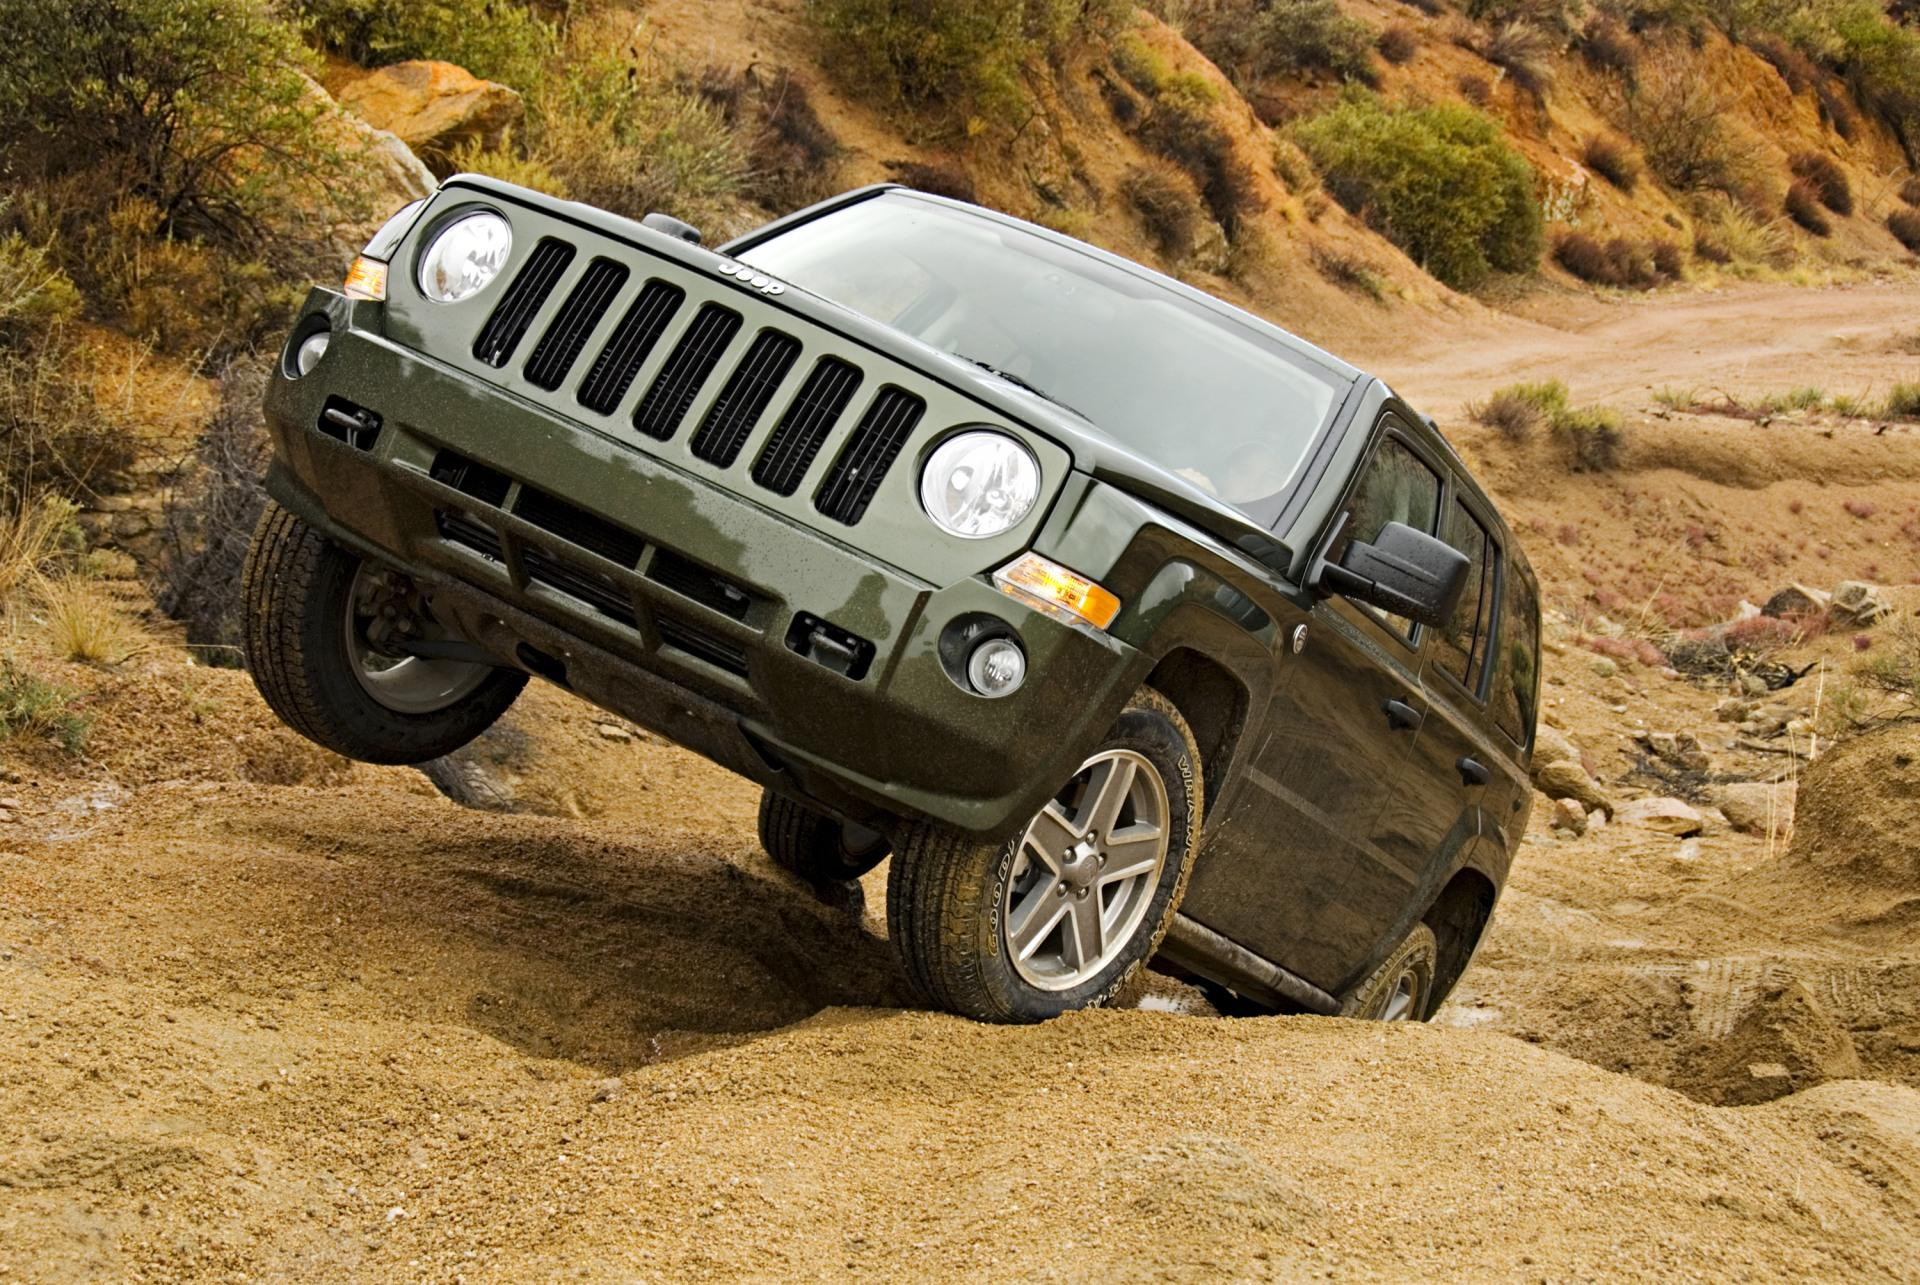 2009 Jeep Patriot News and Information | conceptcarz.com